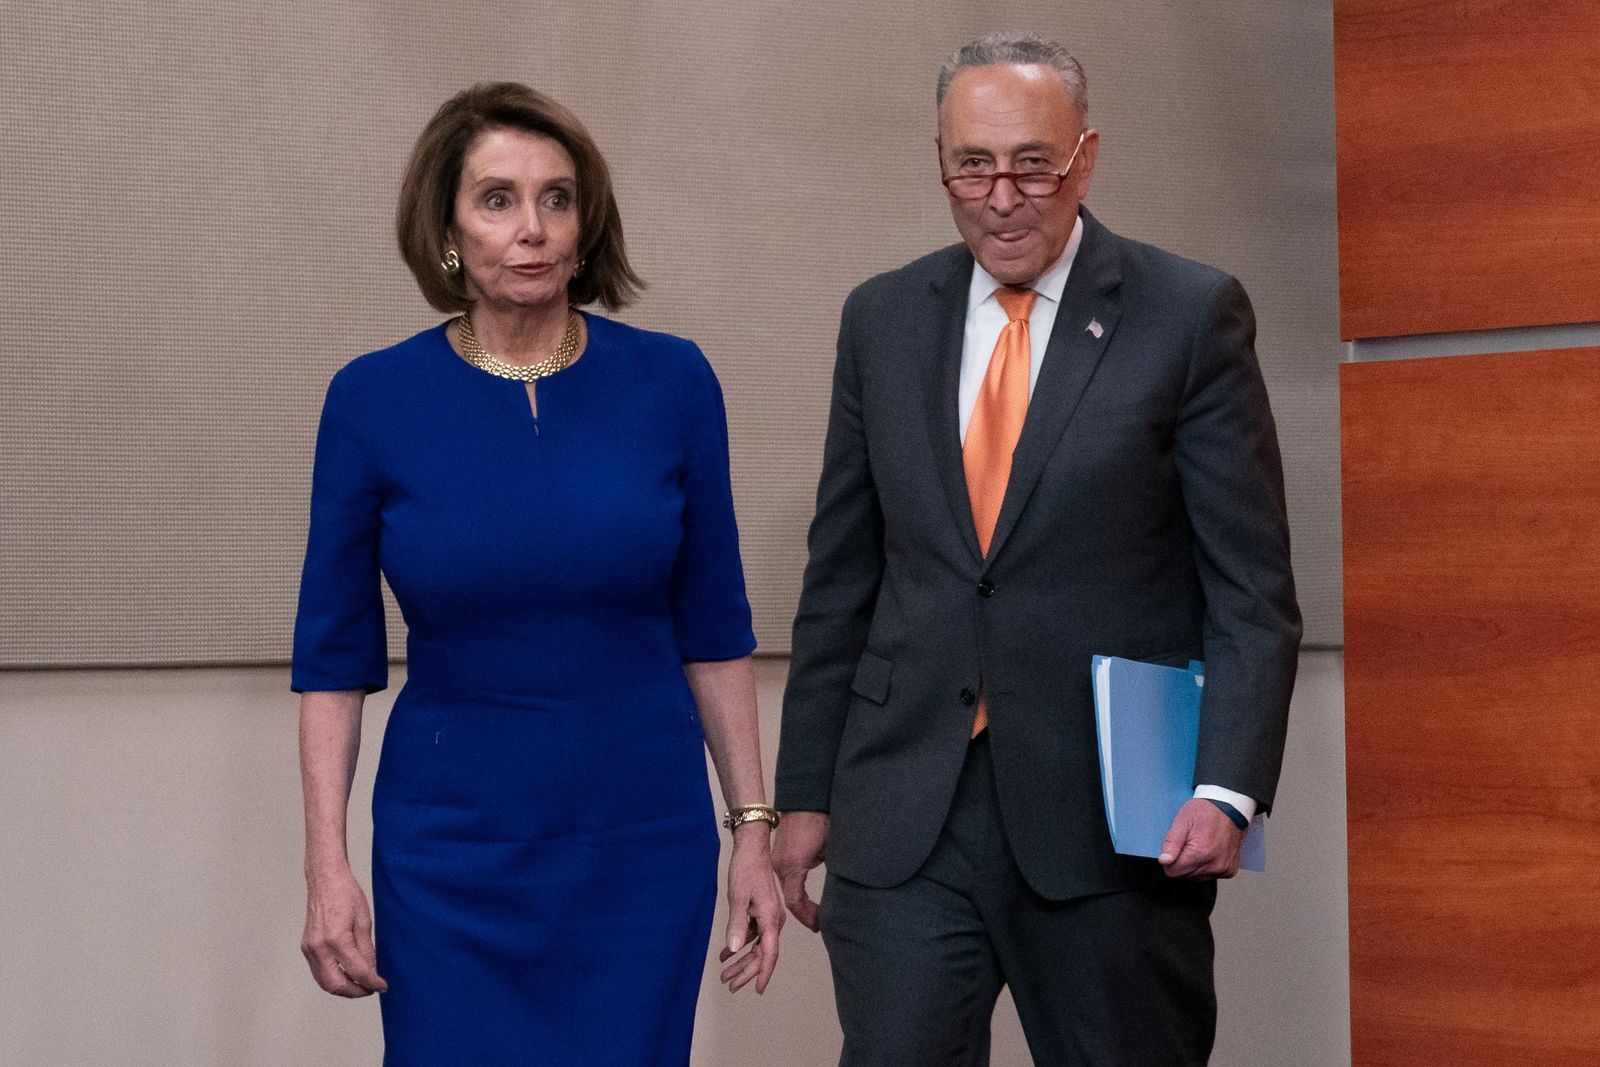 Speaker of the House Nancy Pelosi, D-Calif., left, and Senate Minority Leader Chuck Schumer, D-N.Y., arrive to inform reporters about their failed meeting with President Donald Trump at the White House on infrastructure, at the Capitol in Washington, Wednesday, May 22, 2019.  (AP Photo/J. Scott Applewhite)